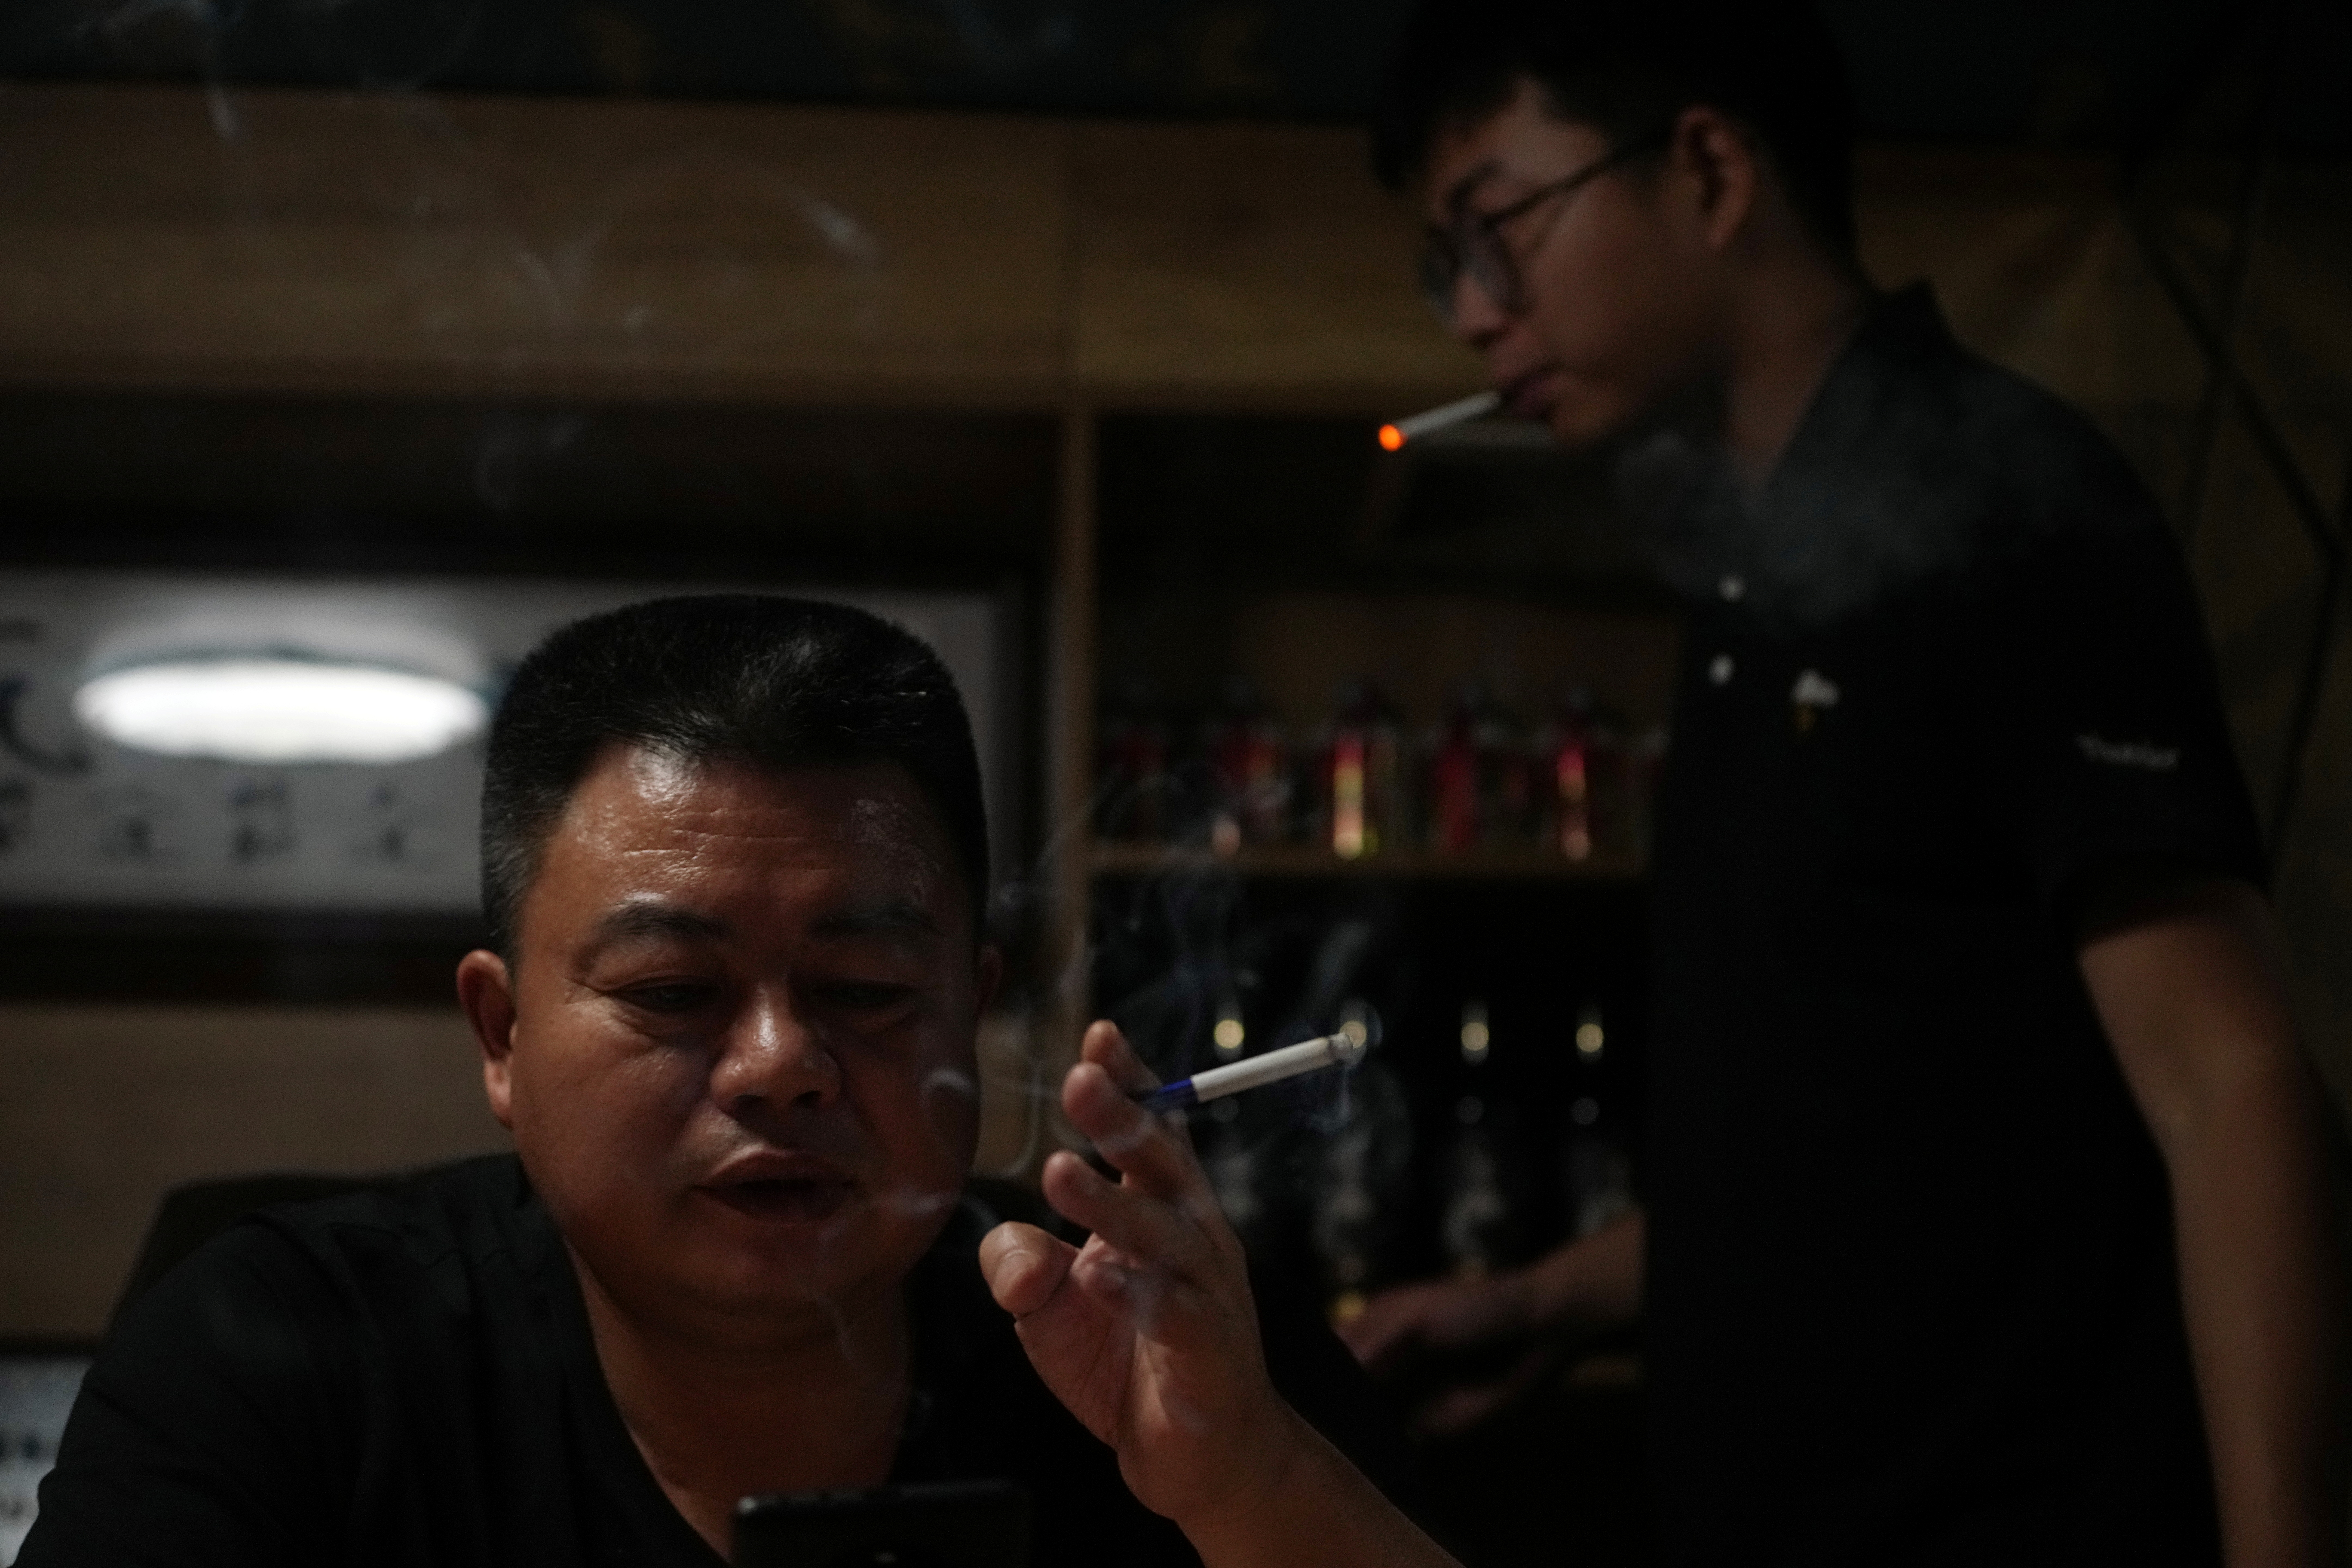 Guo Hui, whose cleaning business is owed money by China Evergrande Group, smokes a cigarette at his office in Guangzhou, Guangdong province, China September 26, 2021. Picture taken September 26, 2021. REUTERS/Aly Song